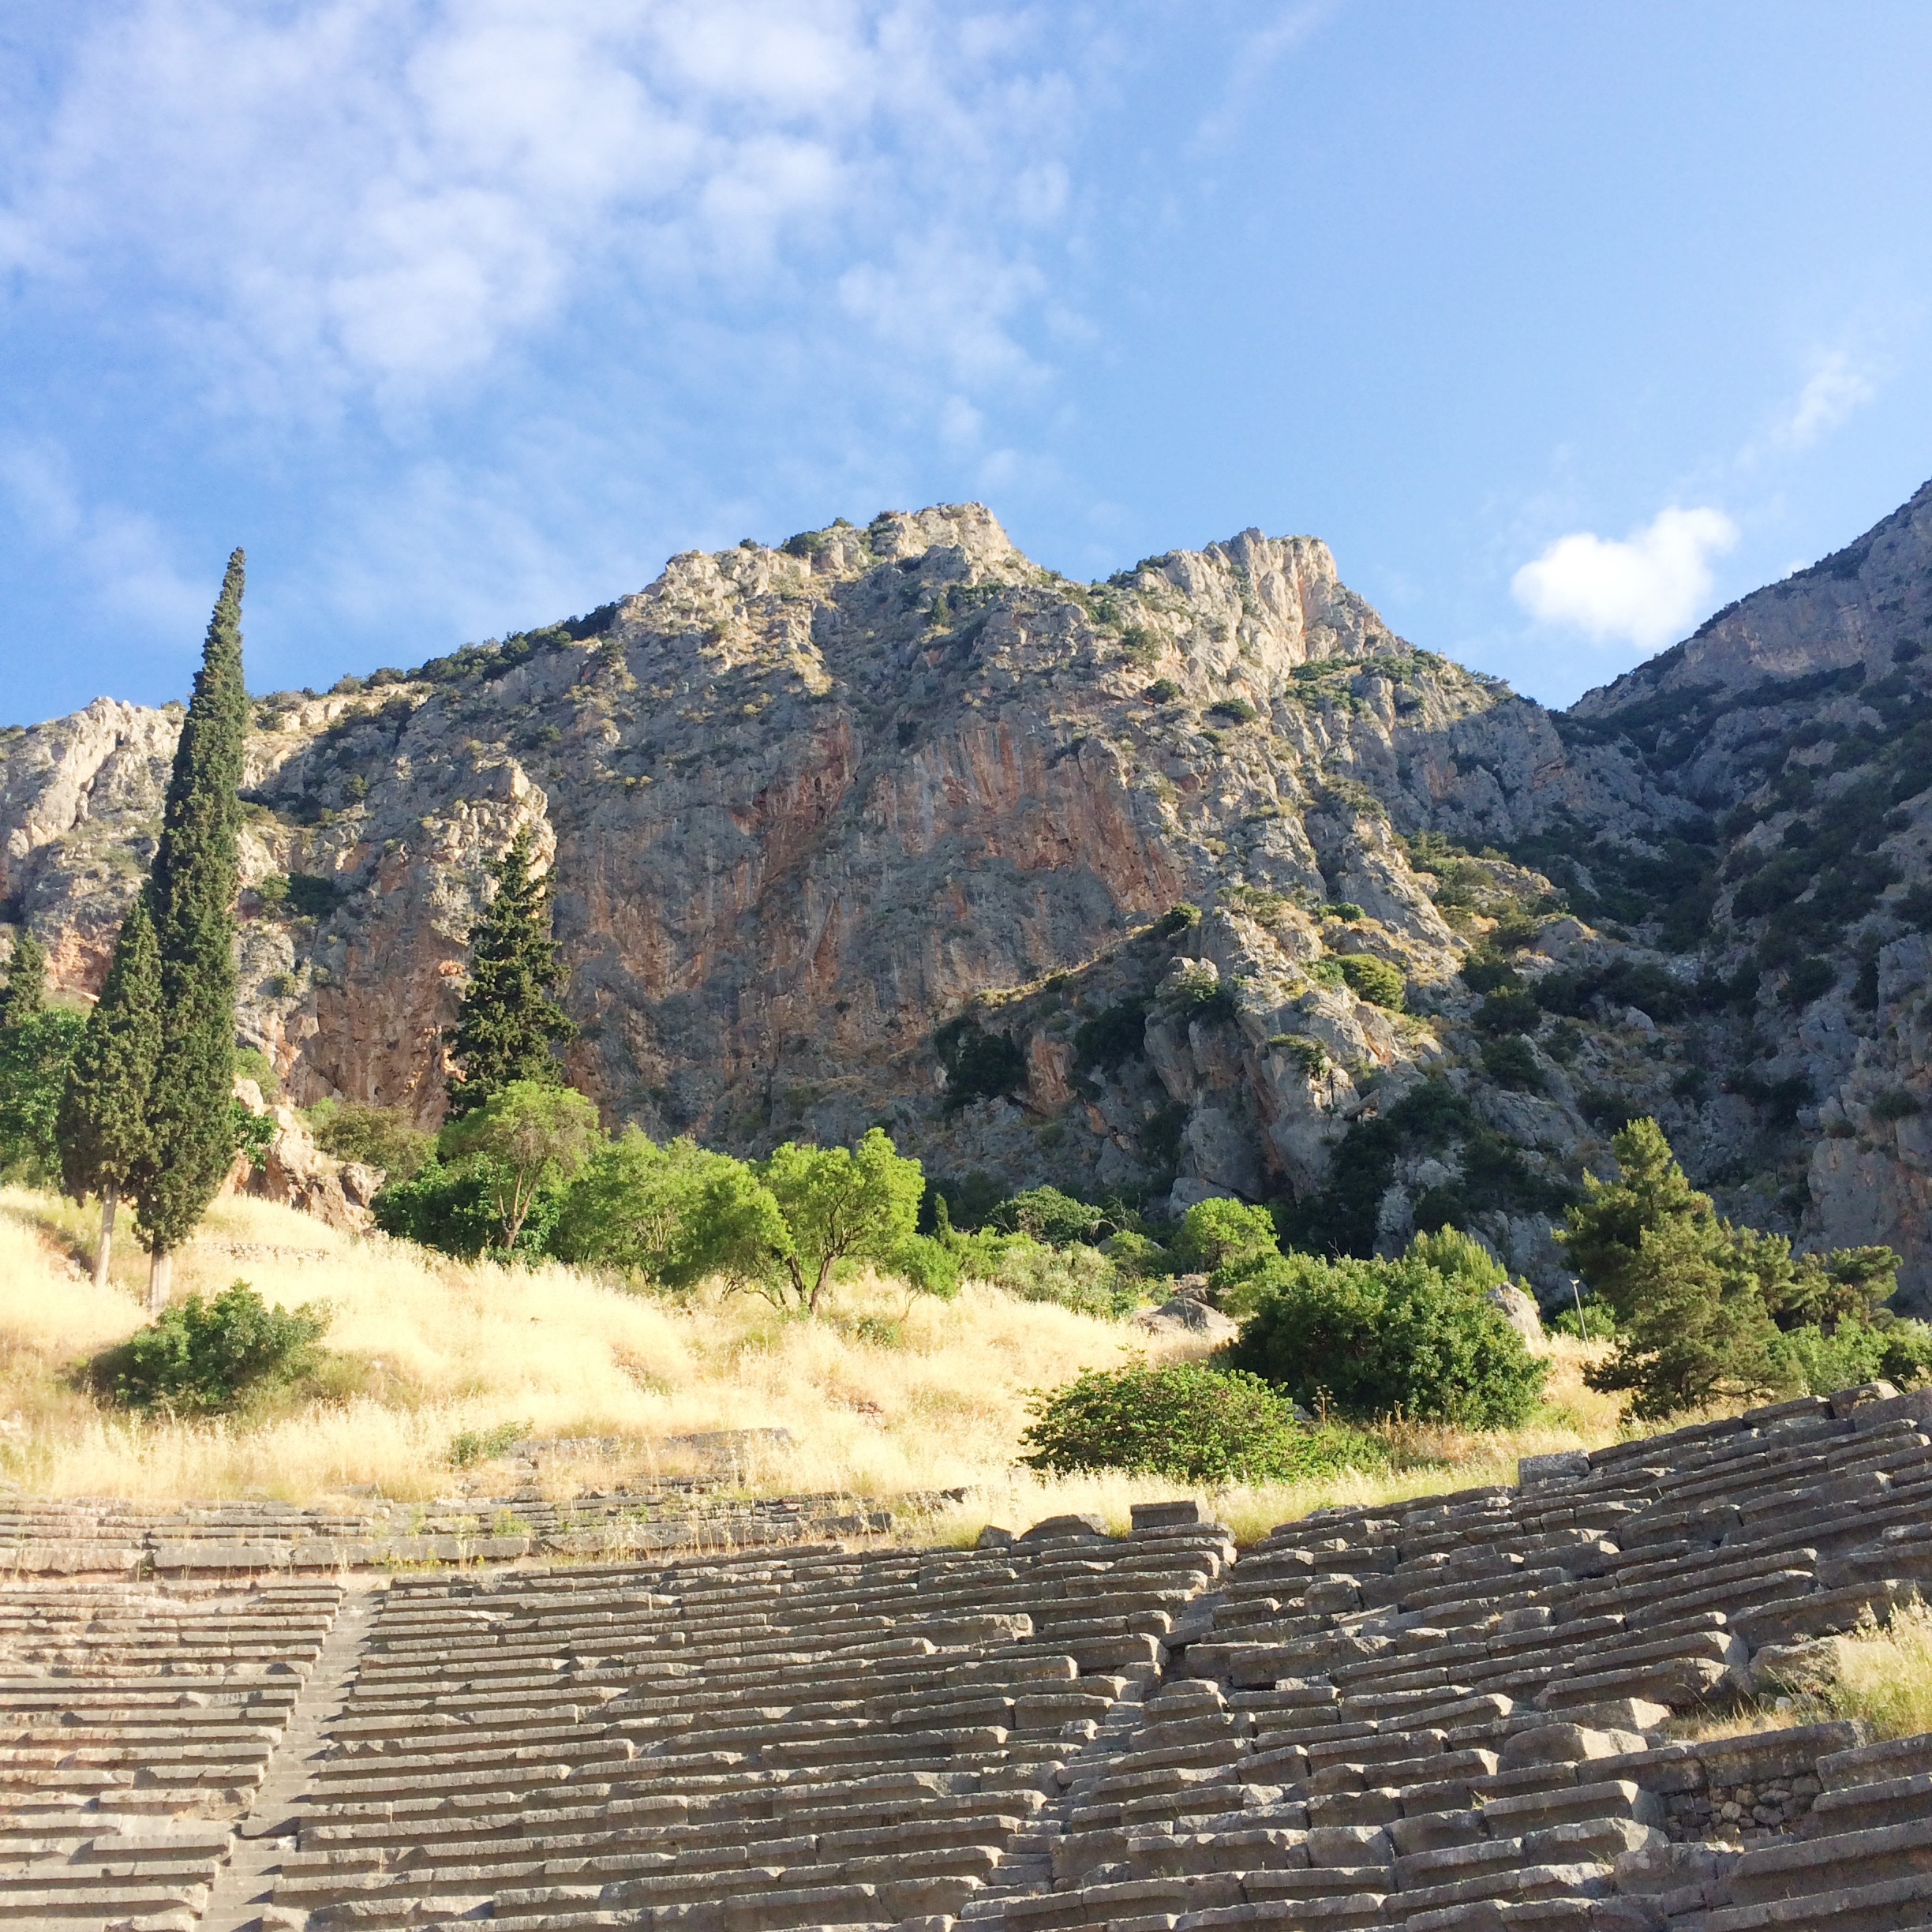 Greece Highlights - Majestic Delphi and More   | Sundays and Somedays